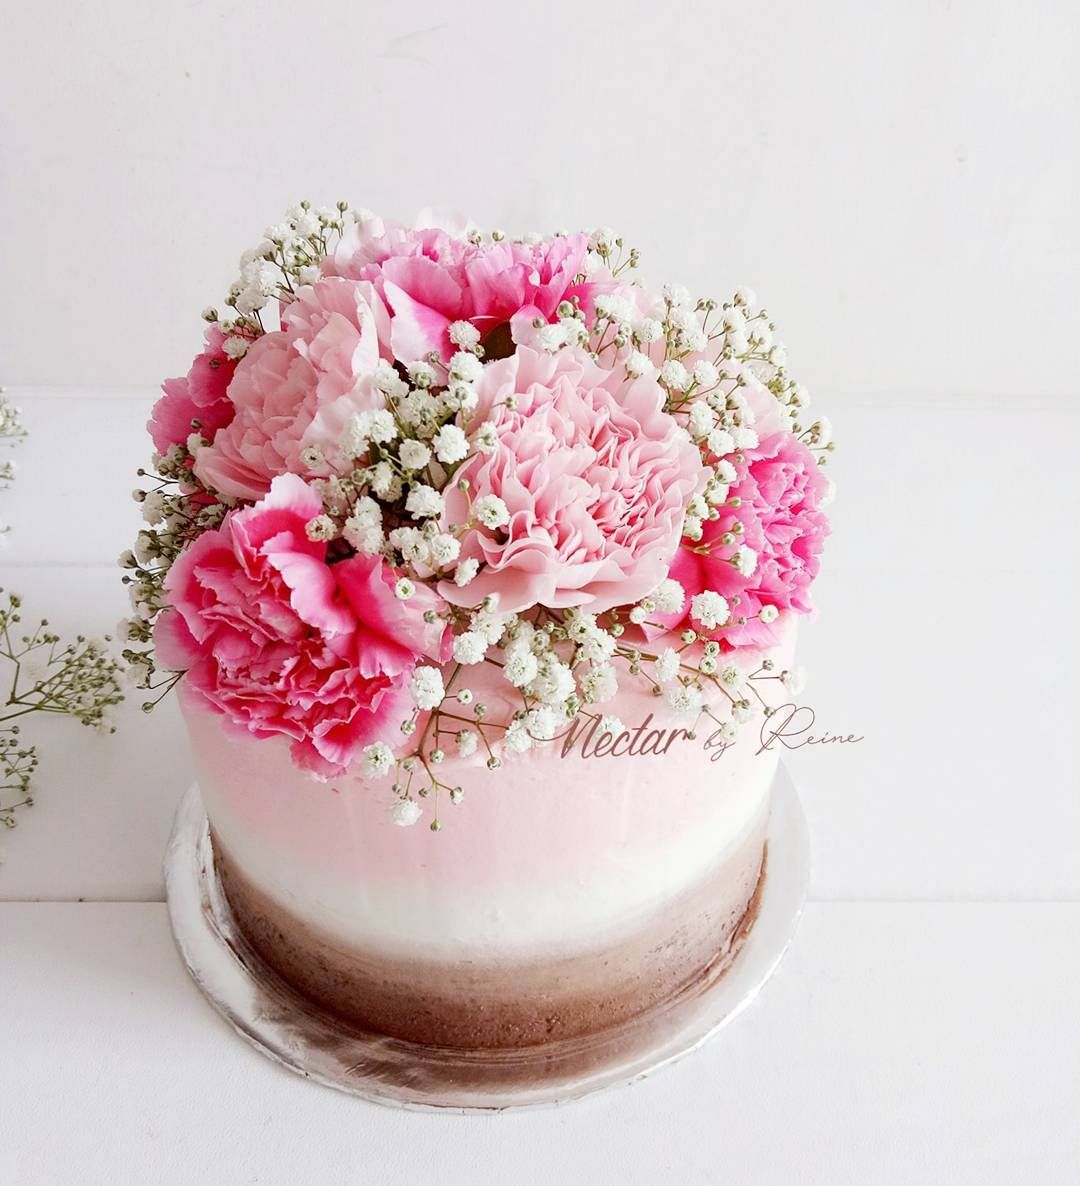 Pretty Pink Carnation Flower Birthday Cake In 2020 Birthday Cake With Flowers Birthday Flowers Cake Decorating